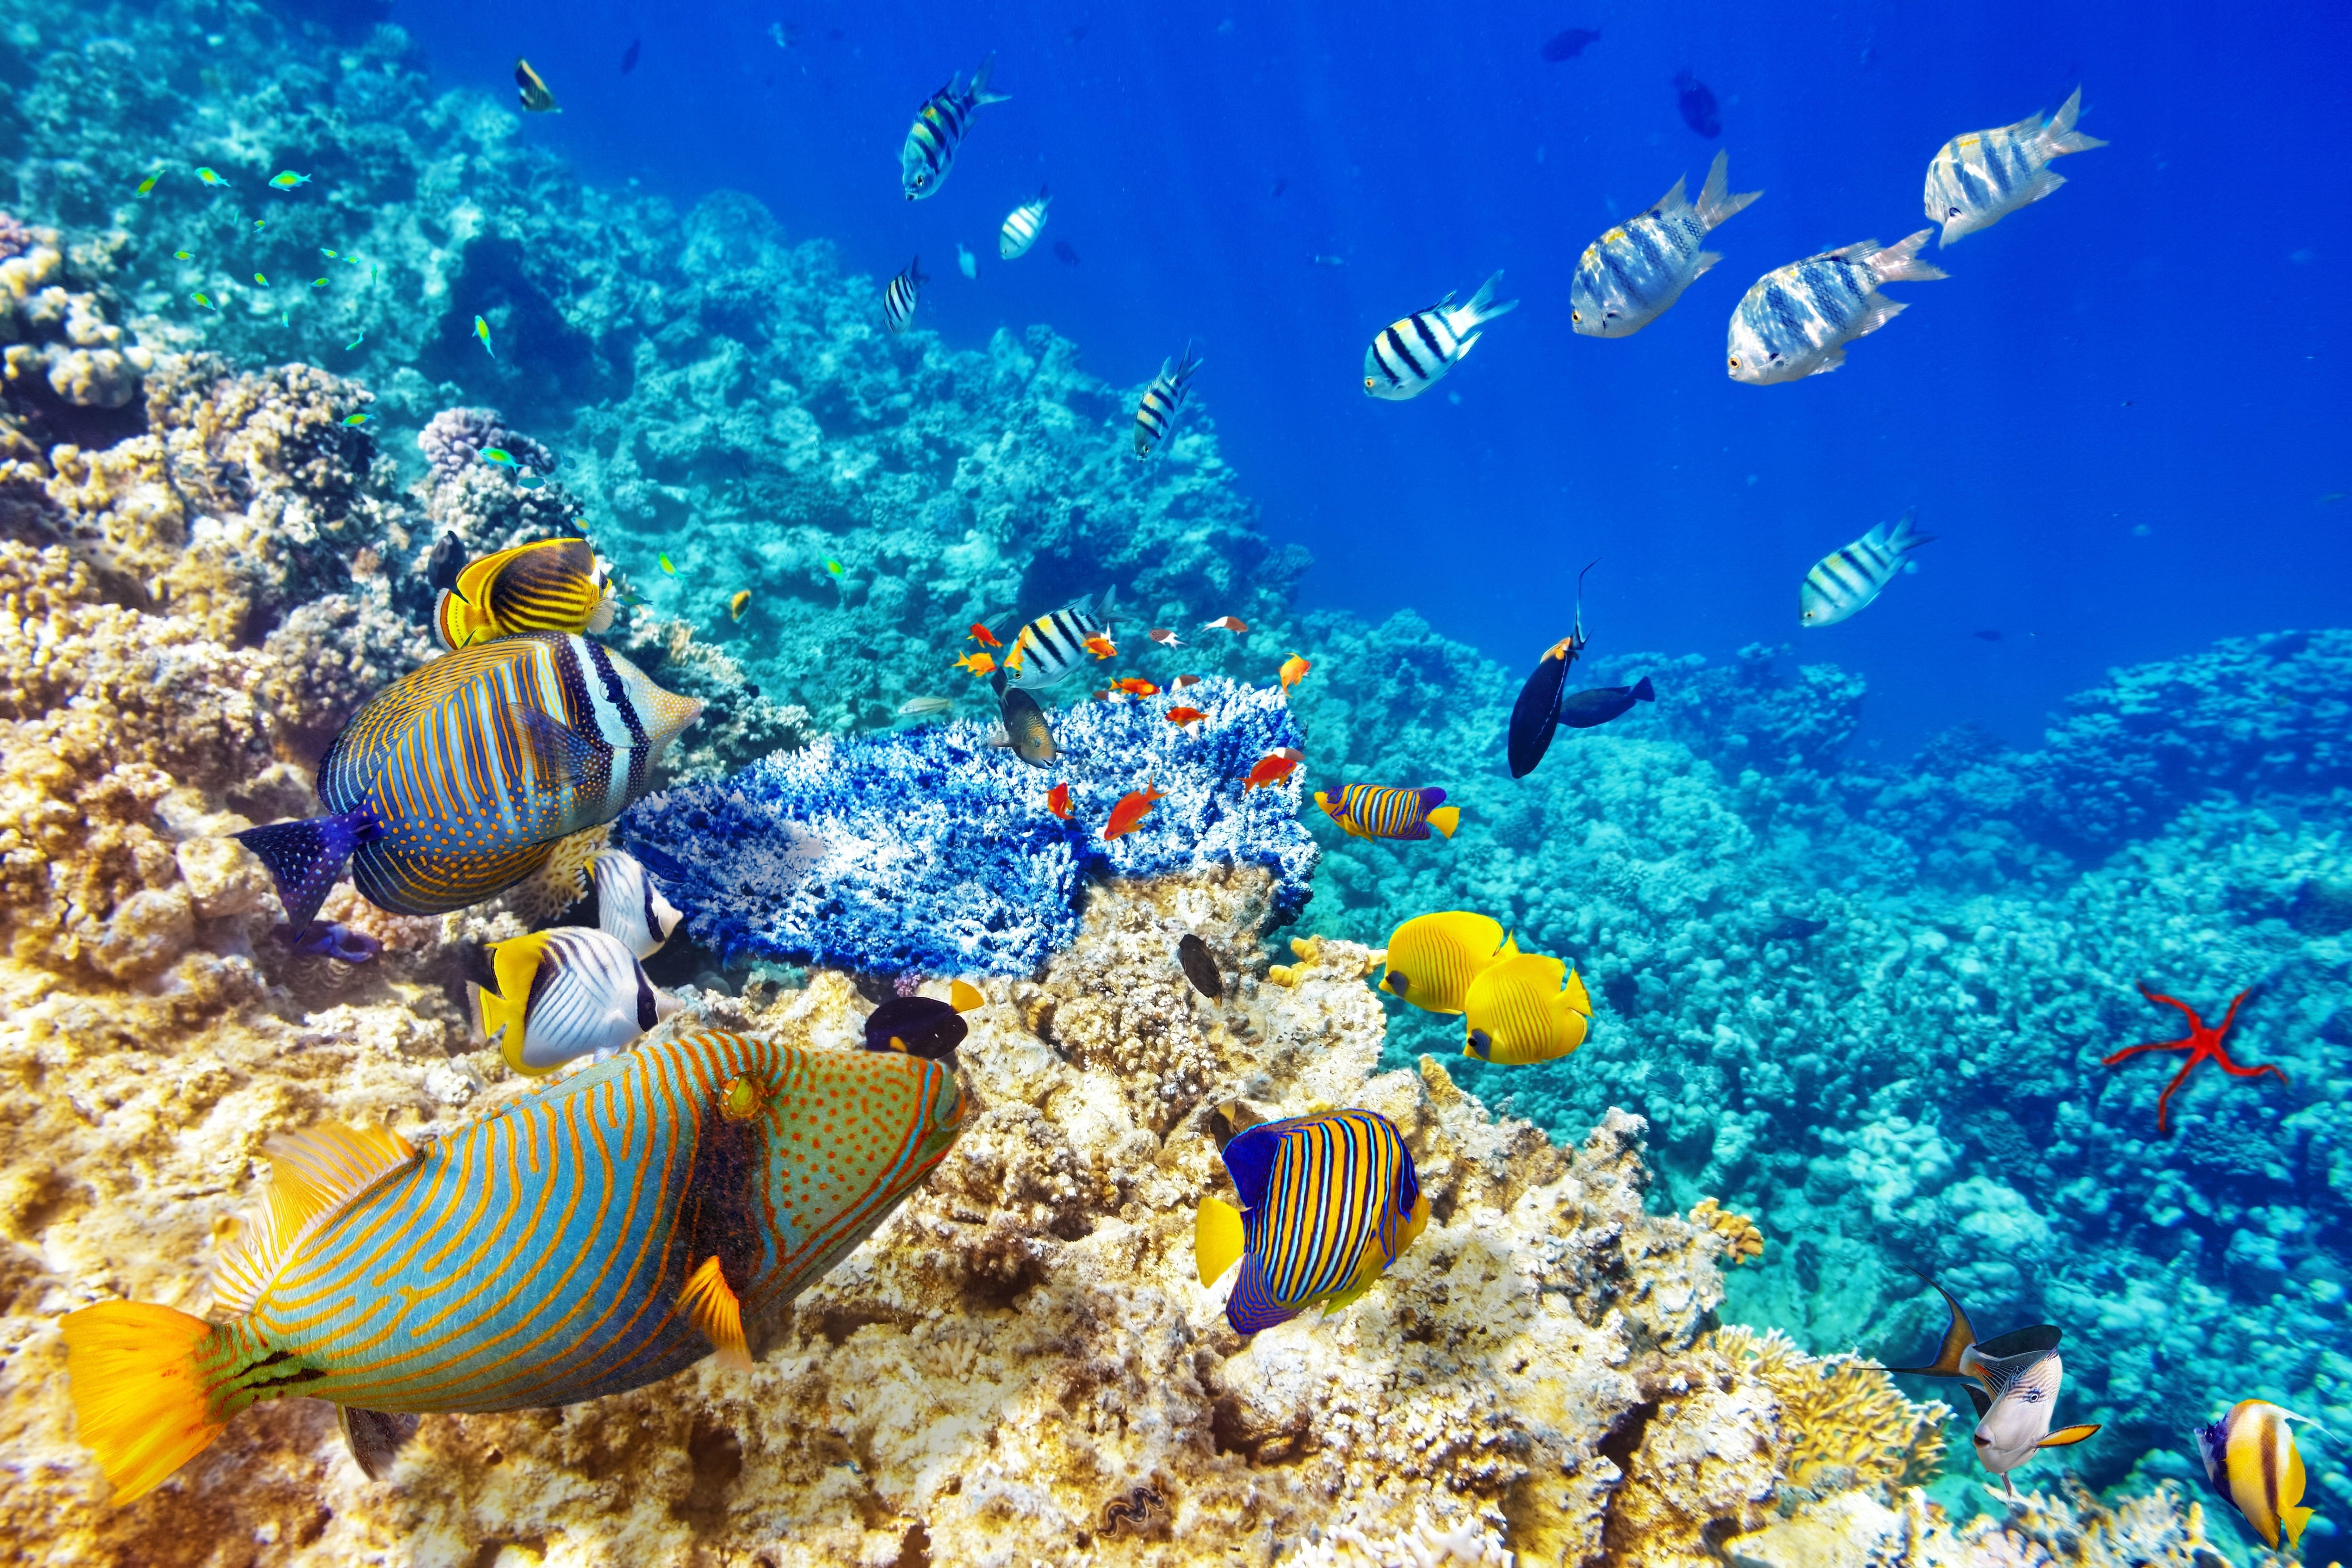 Underwater World Ocean Fish Coral Reef Images 7200x4800 Oceans Of The World Underwater World Ocean Fishing